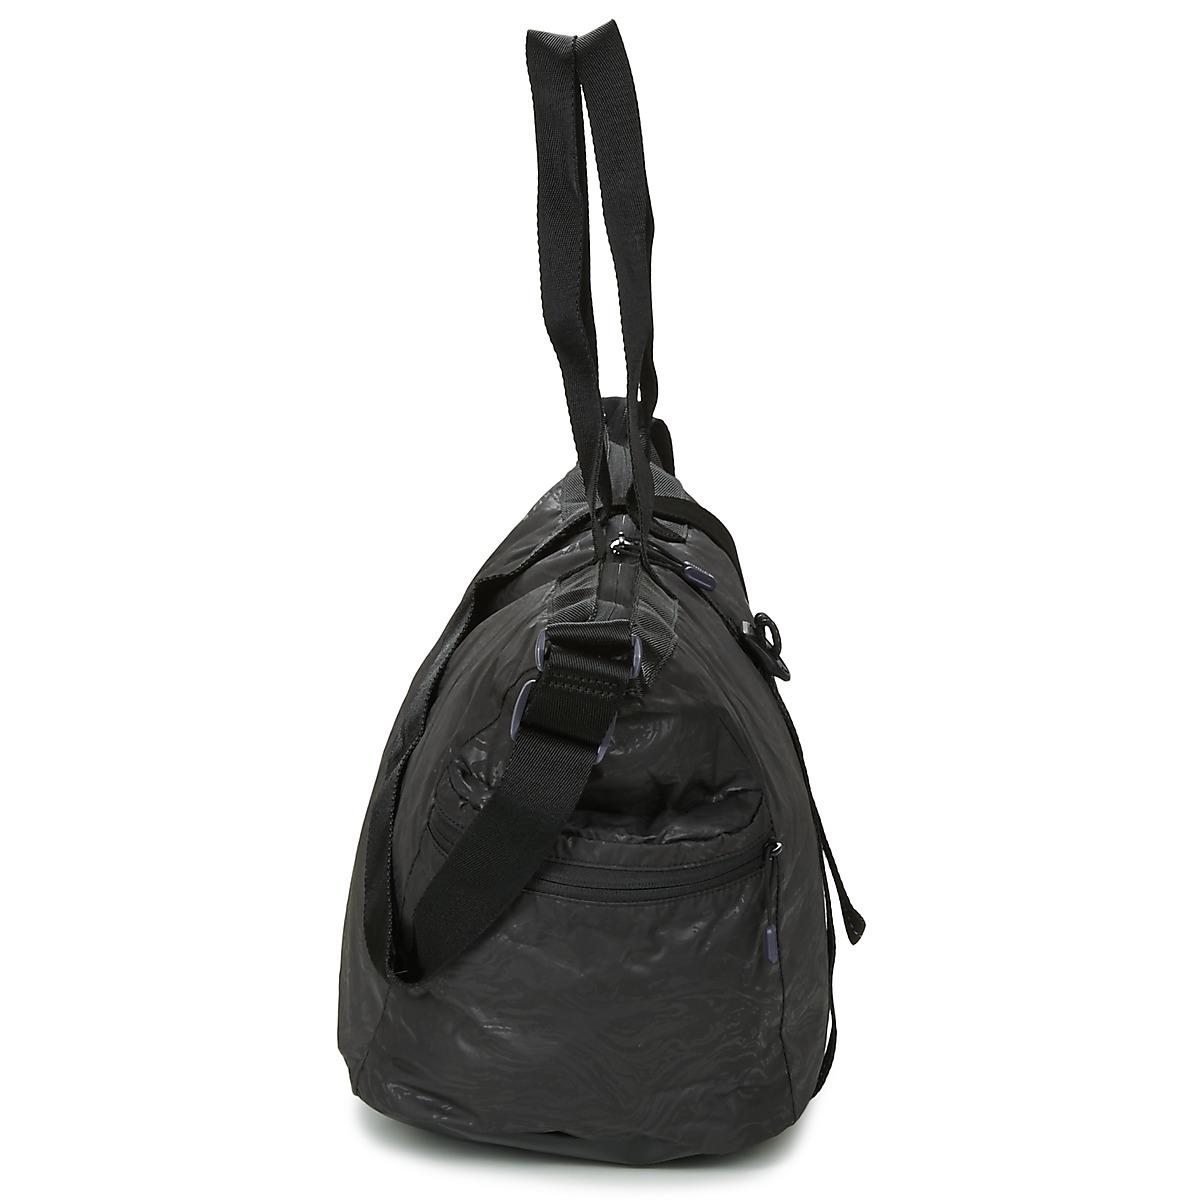 bffb391f3f PUMA Fit At Workout Bag Women s Sports Bag In Black in Black - Lyst